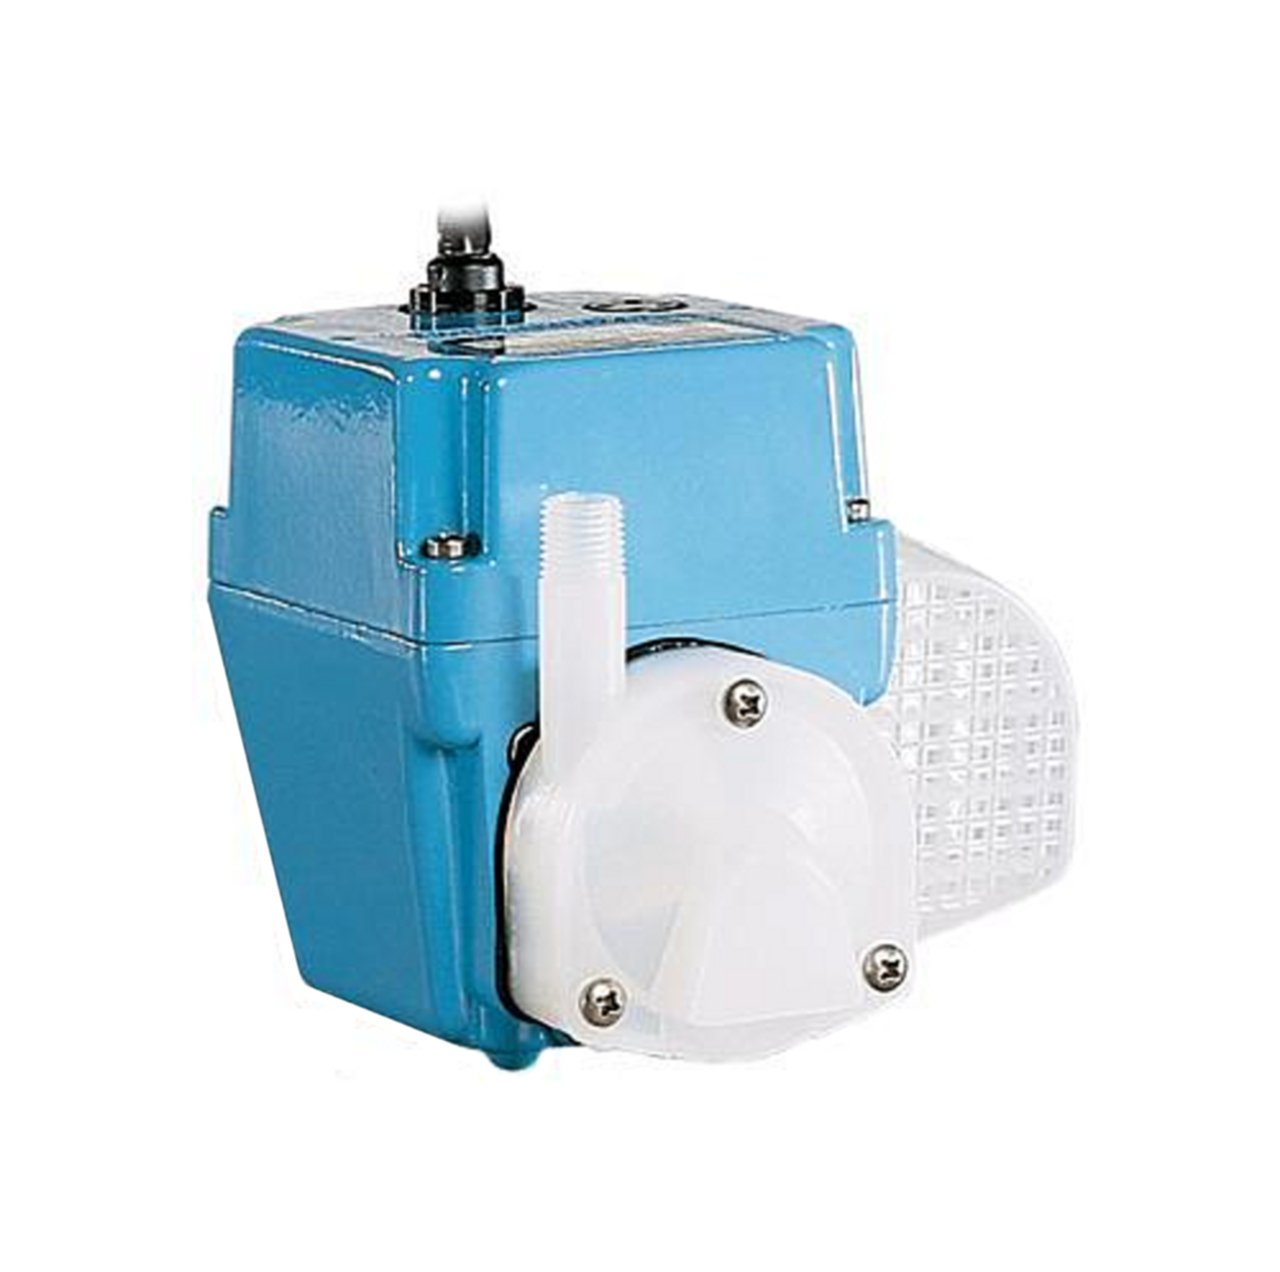 Little Giant 2E-N 502103 Permanently Lubricated Submersible Pump, 300 Gallons Per Hour